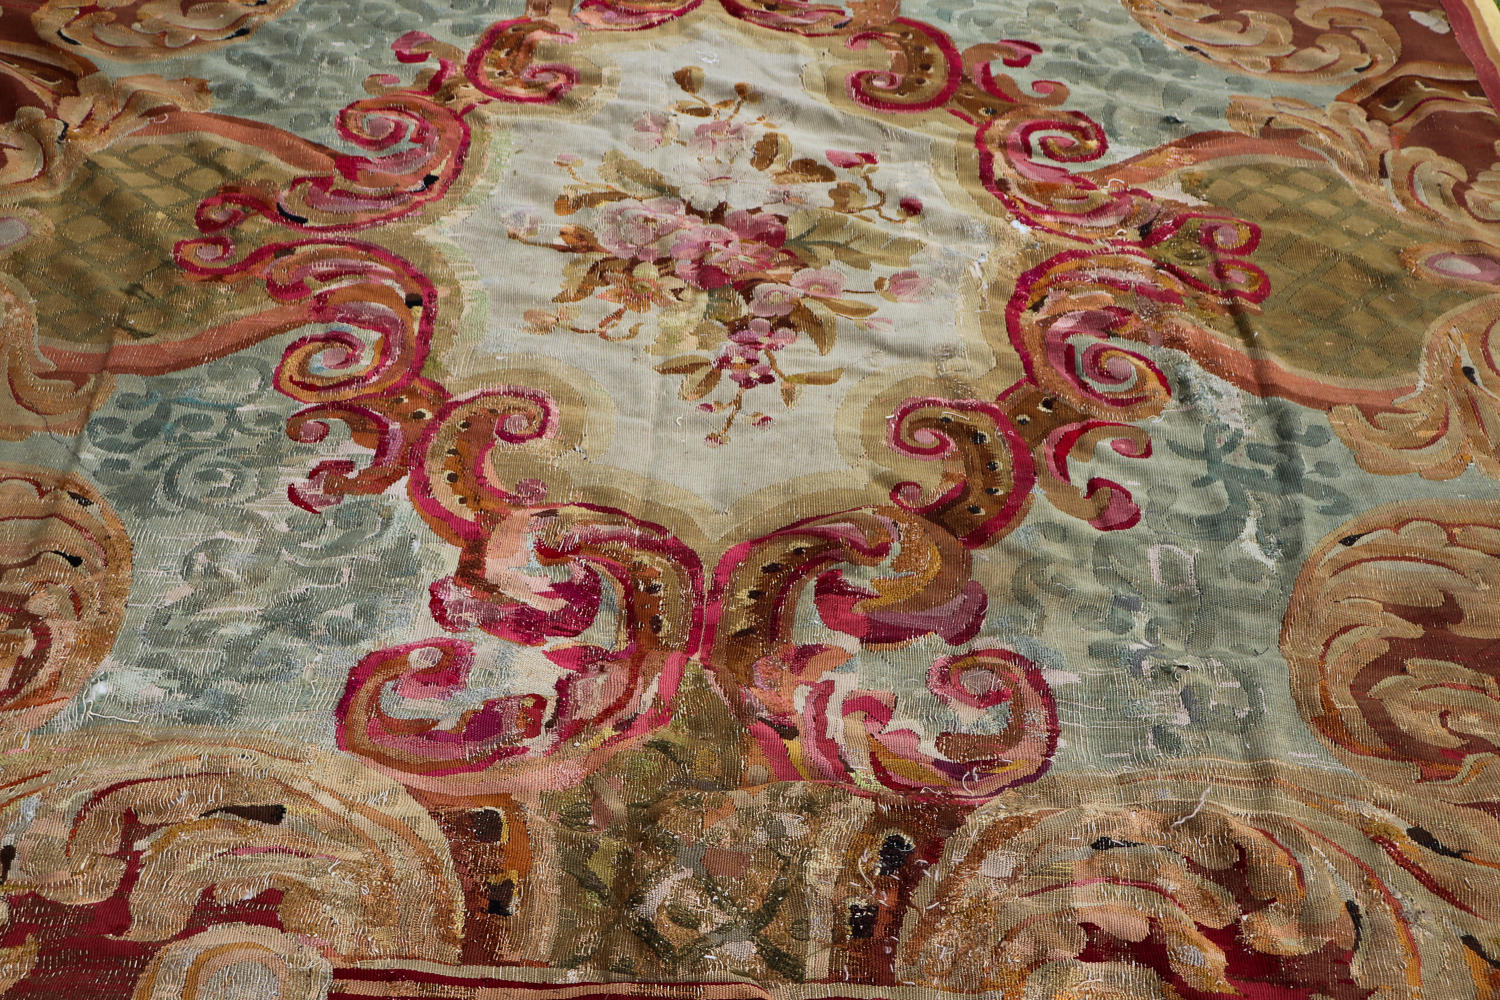 Aubusson carpet - 19th century